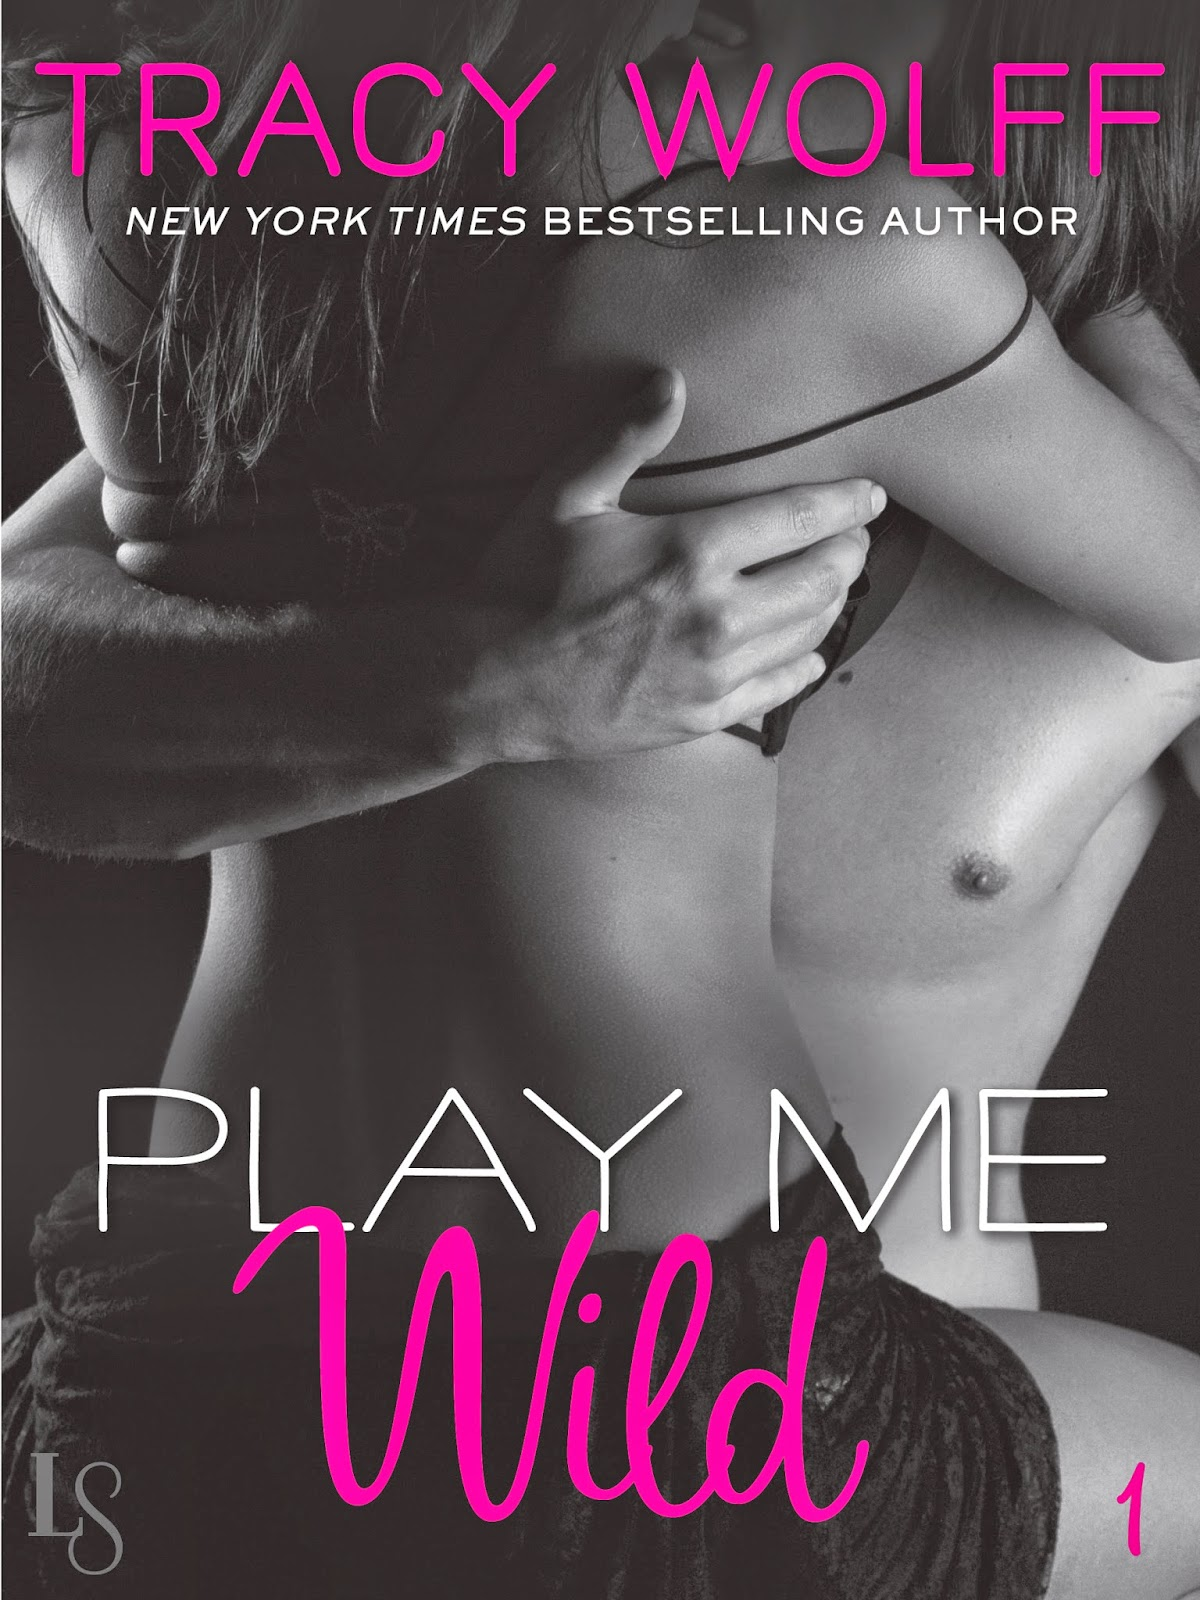 http://www.readloveswept.com/books/play-me-1-play-me-wild/